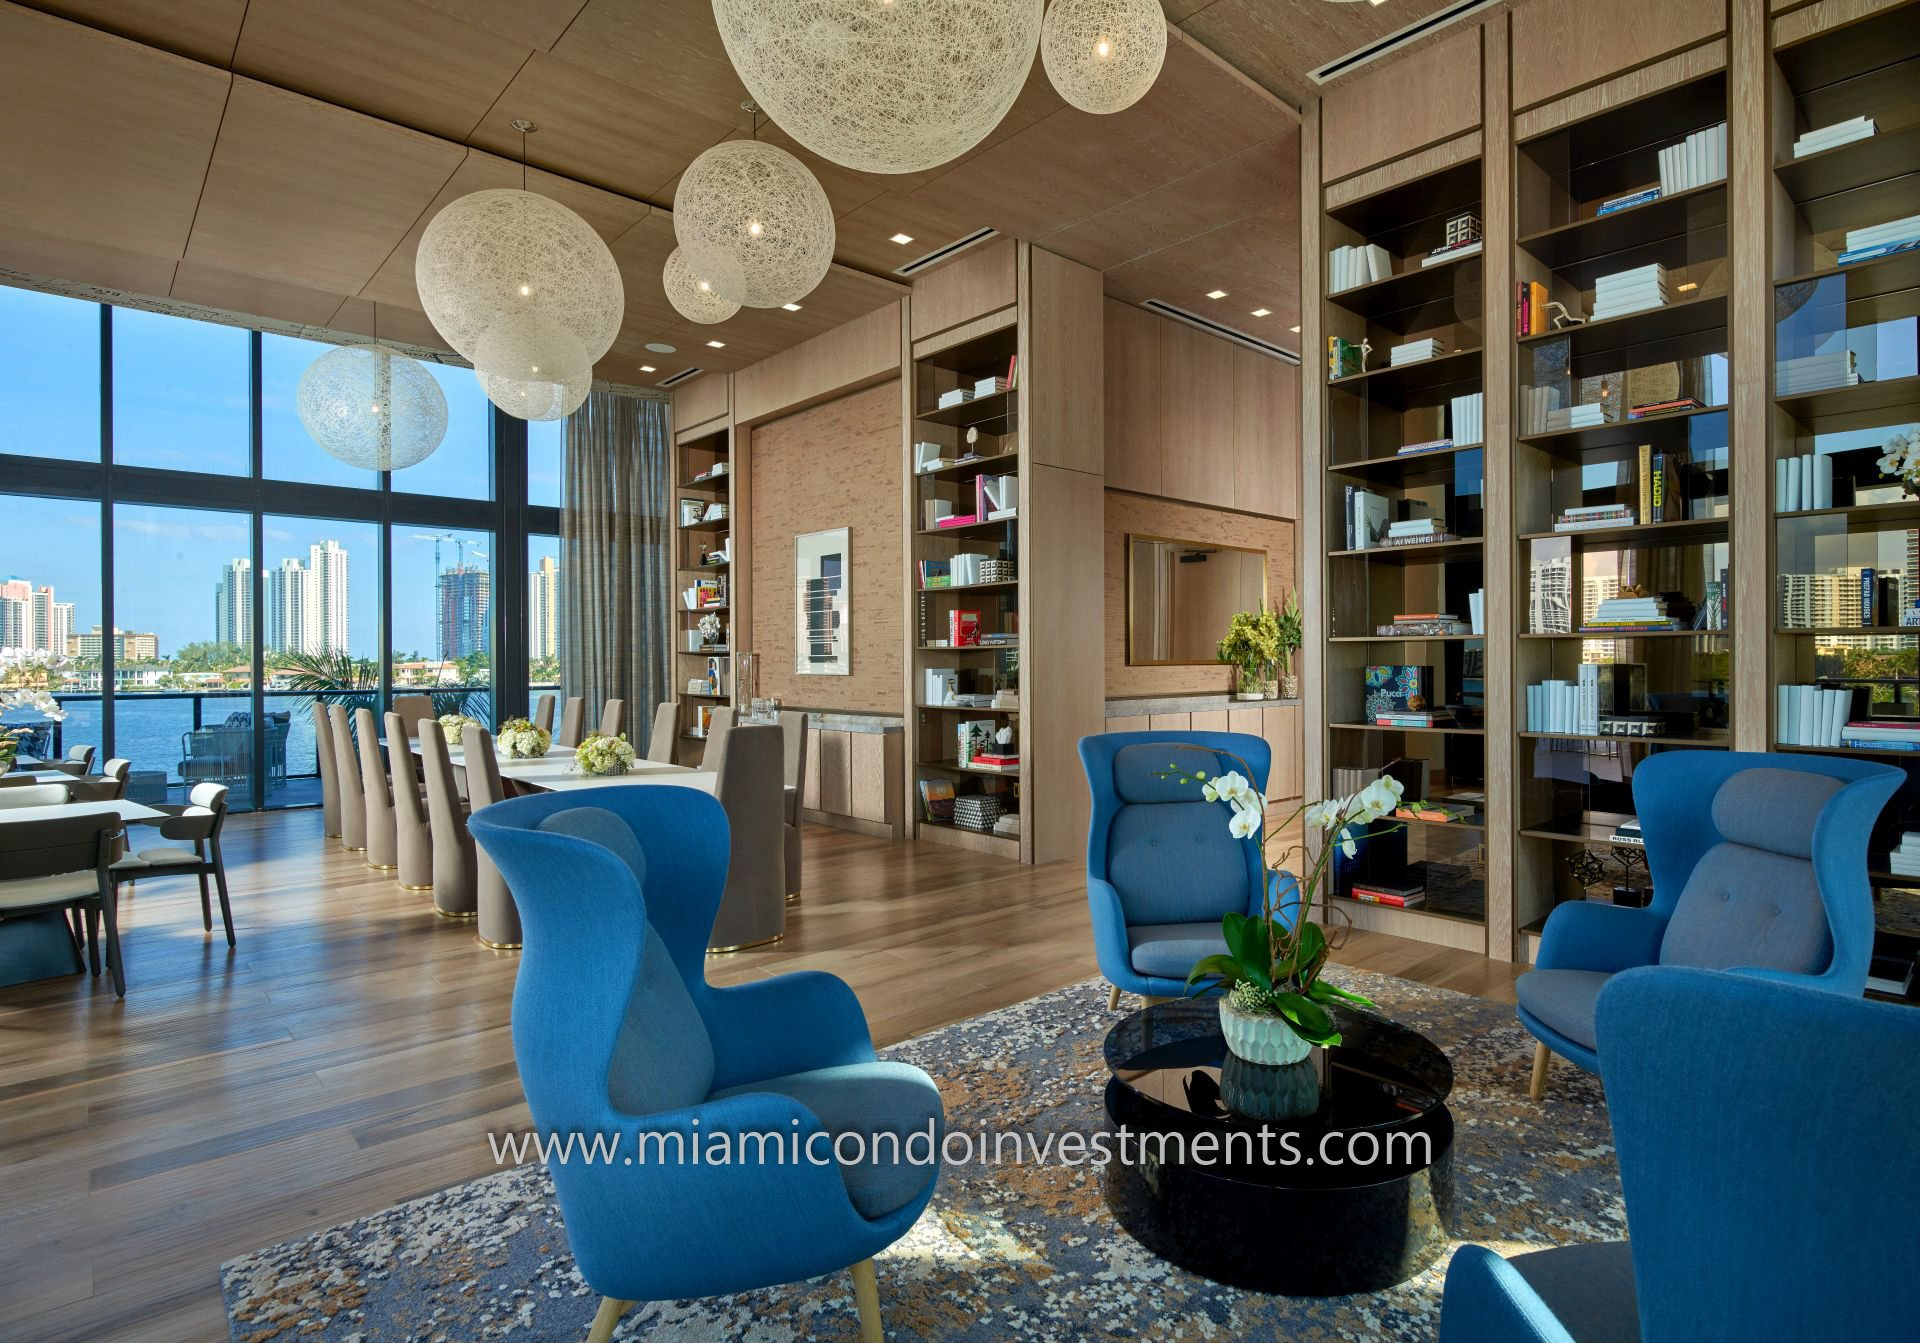 Prive library and dining area